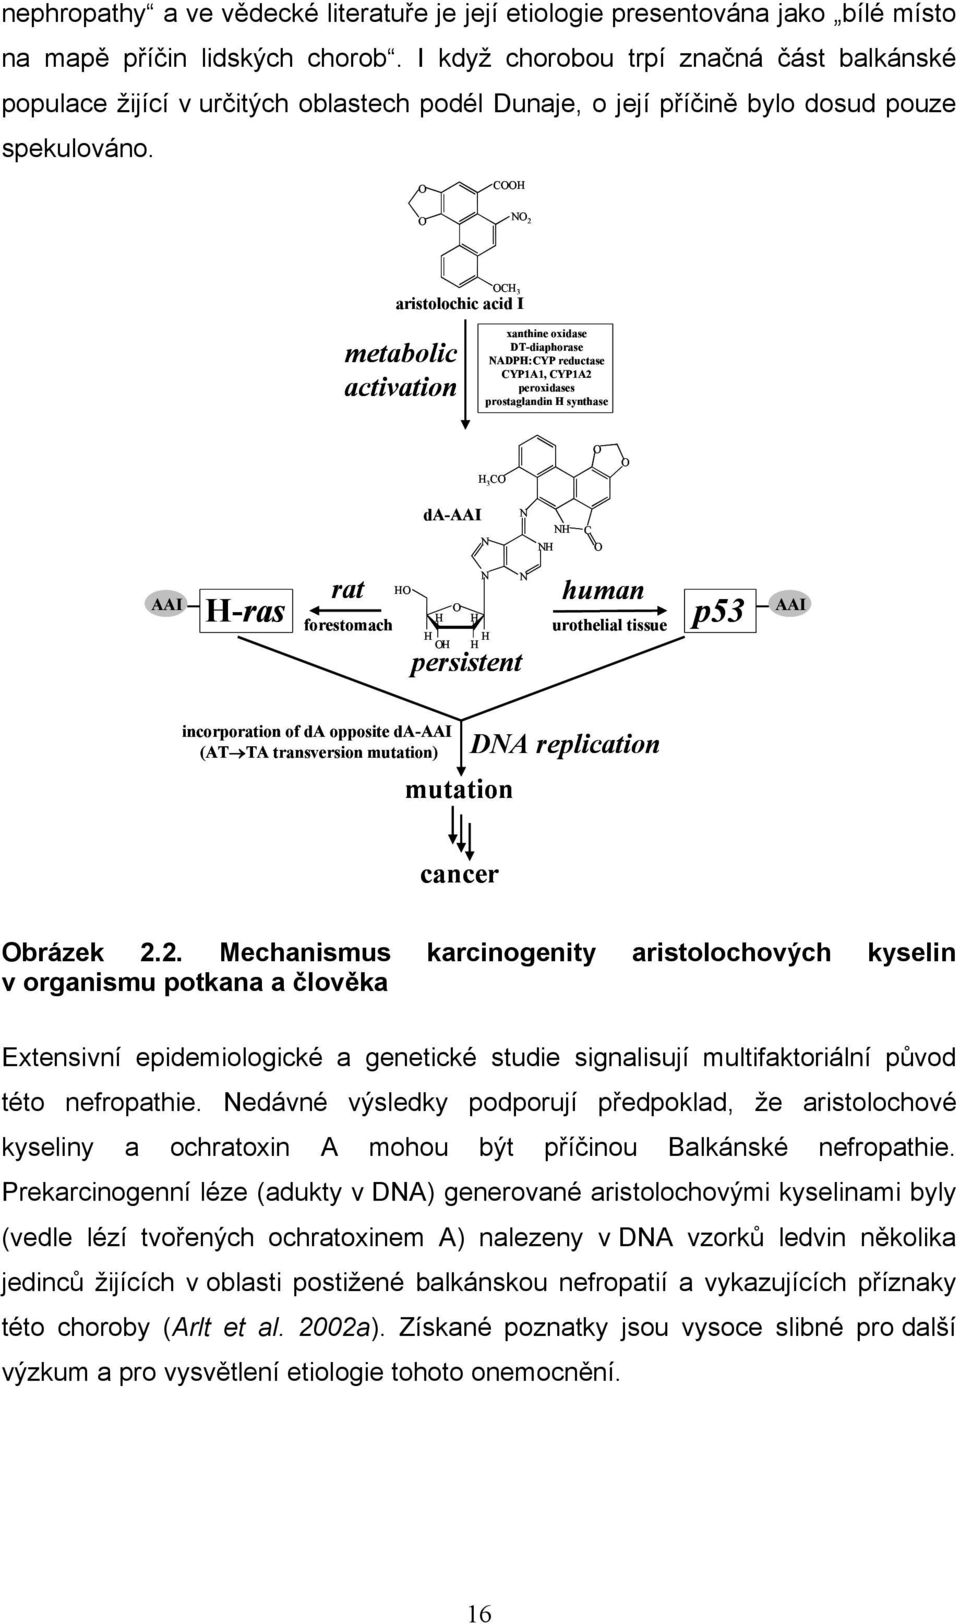 CH N 2 CH 3 aristolochic acid I metabolic activation xanthine oxidase DT-diaphorase NADPH:CYP reductase CYP1A1, CYP1A2 peroxidases prostaglandin H synthase H 3 C da-aai N N NH NH C AAI H-ras rat